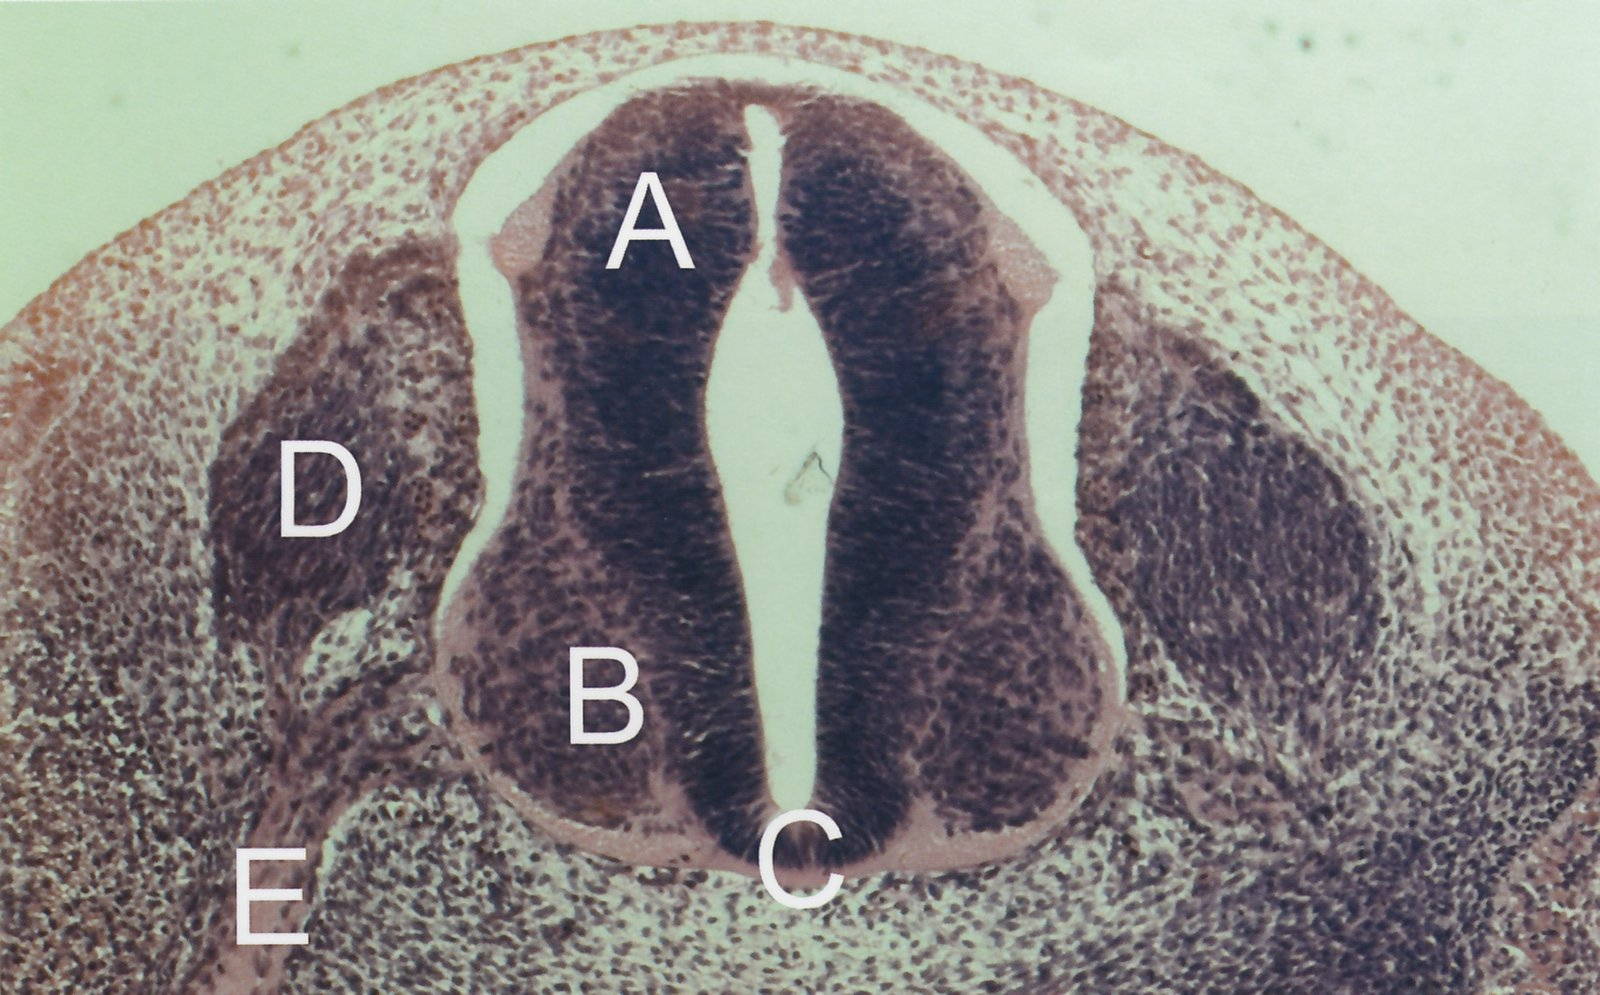 Spinal Cord Tracts And Reflexes Amboss The filum terminale is a small thin filament of connective tissue that extends inferiorly from the apex of the conus medullaris to the sacrum. spinal cord tracts and reflexes amboss